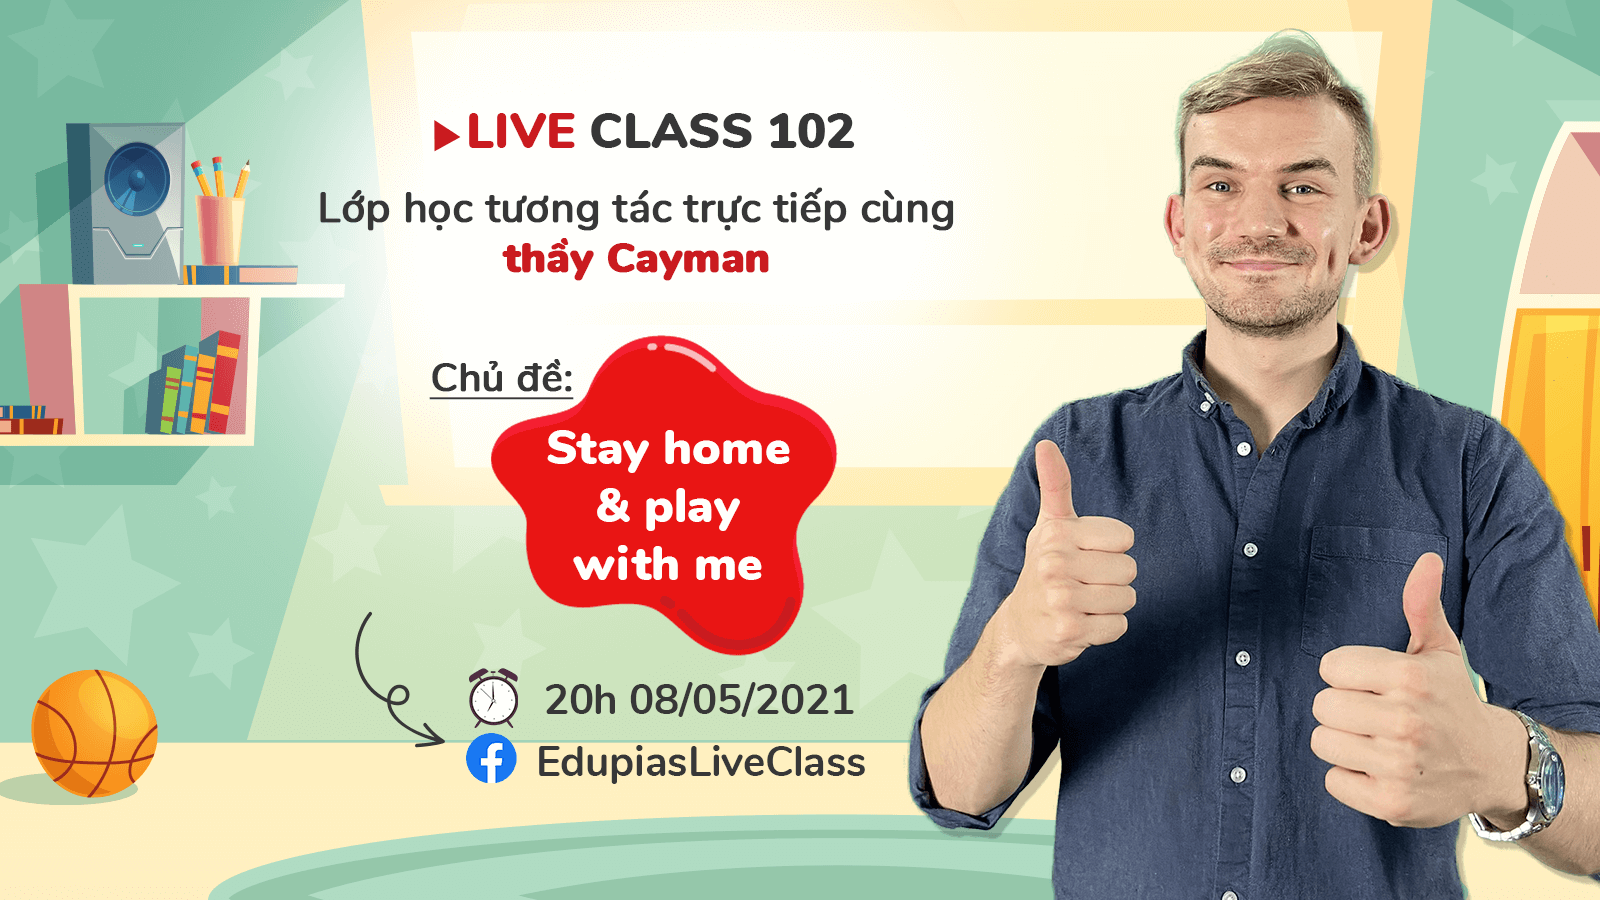 Live class tuần 102 - Chủ đề: Stay home and play with me